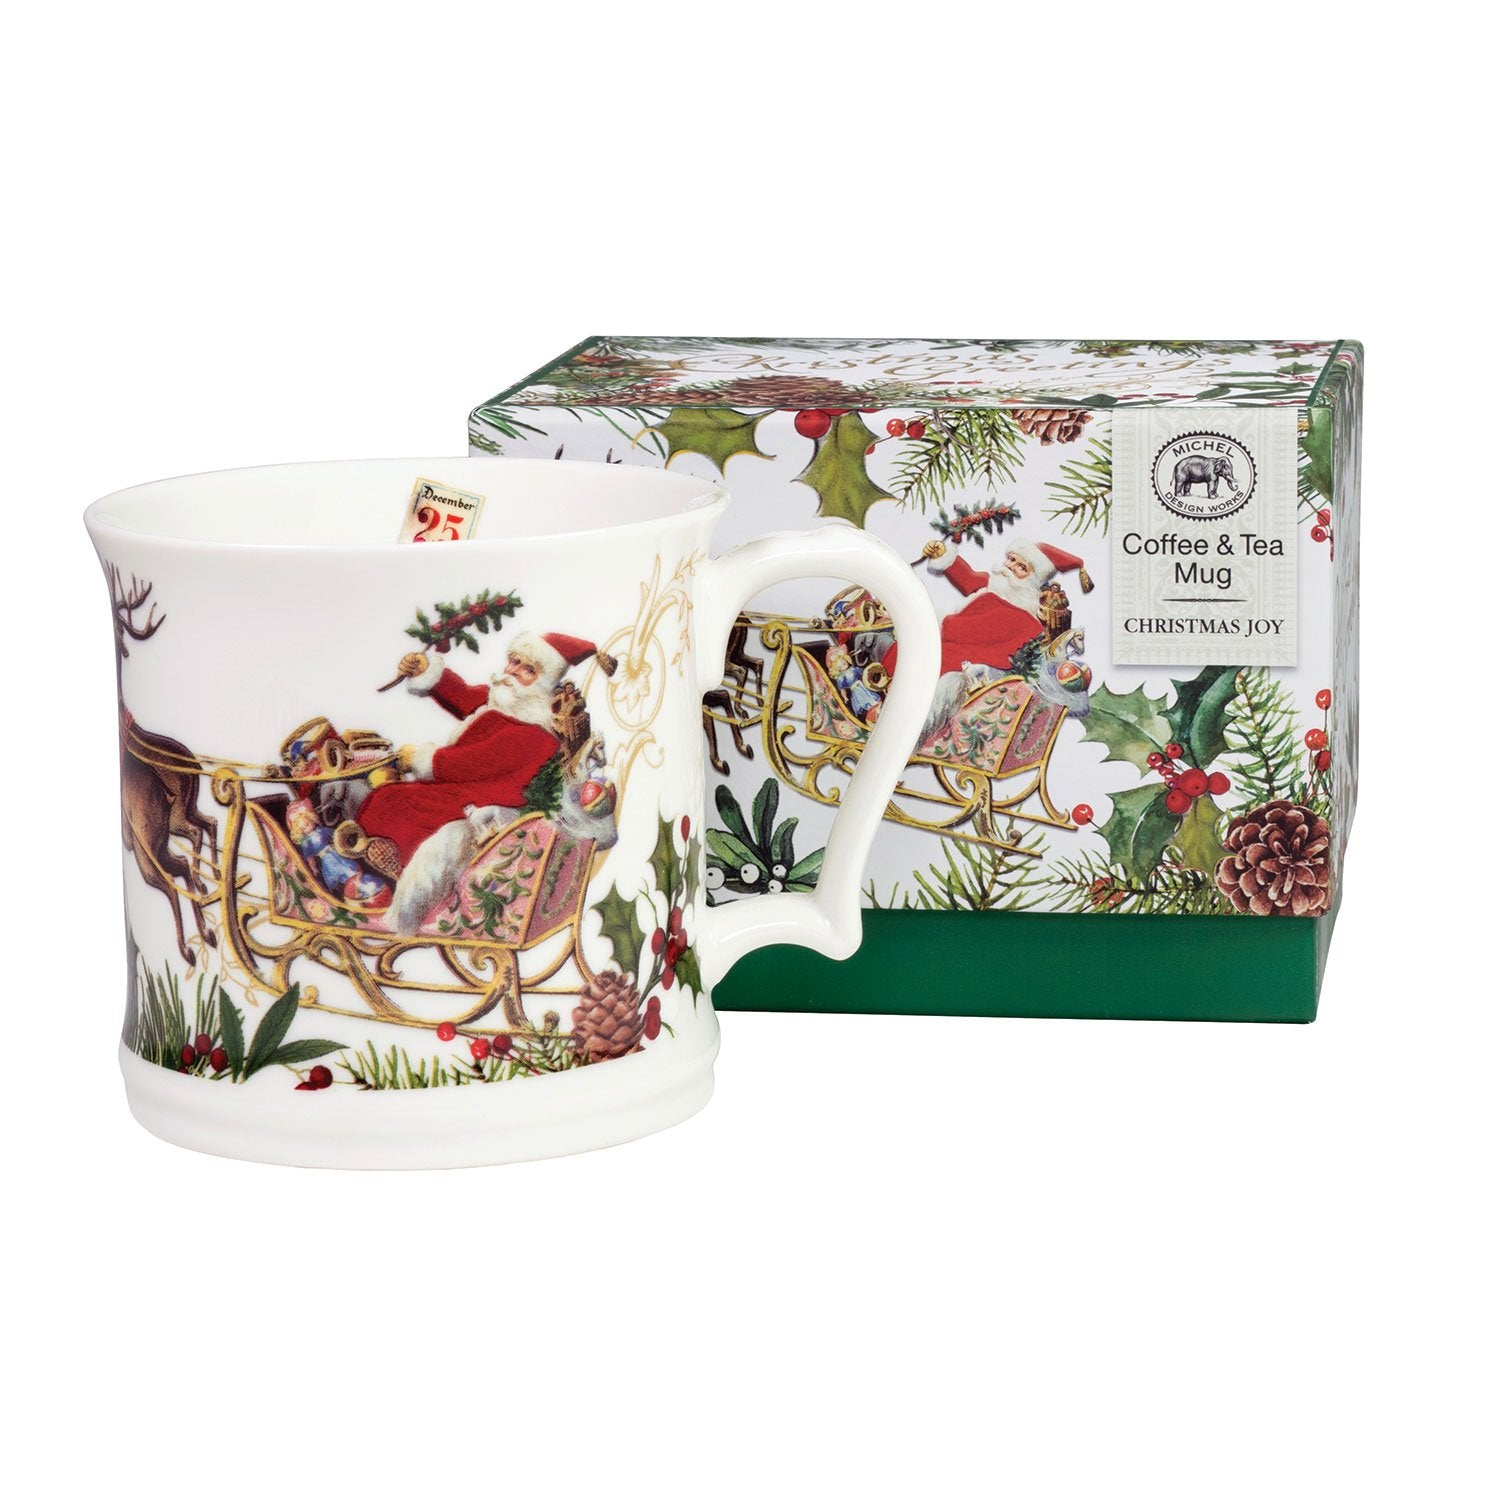 Christmas Joy Coffee & Tea Mug